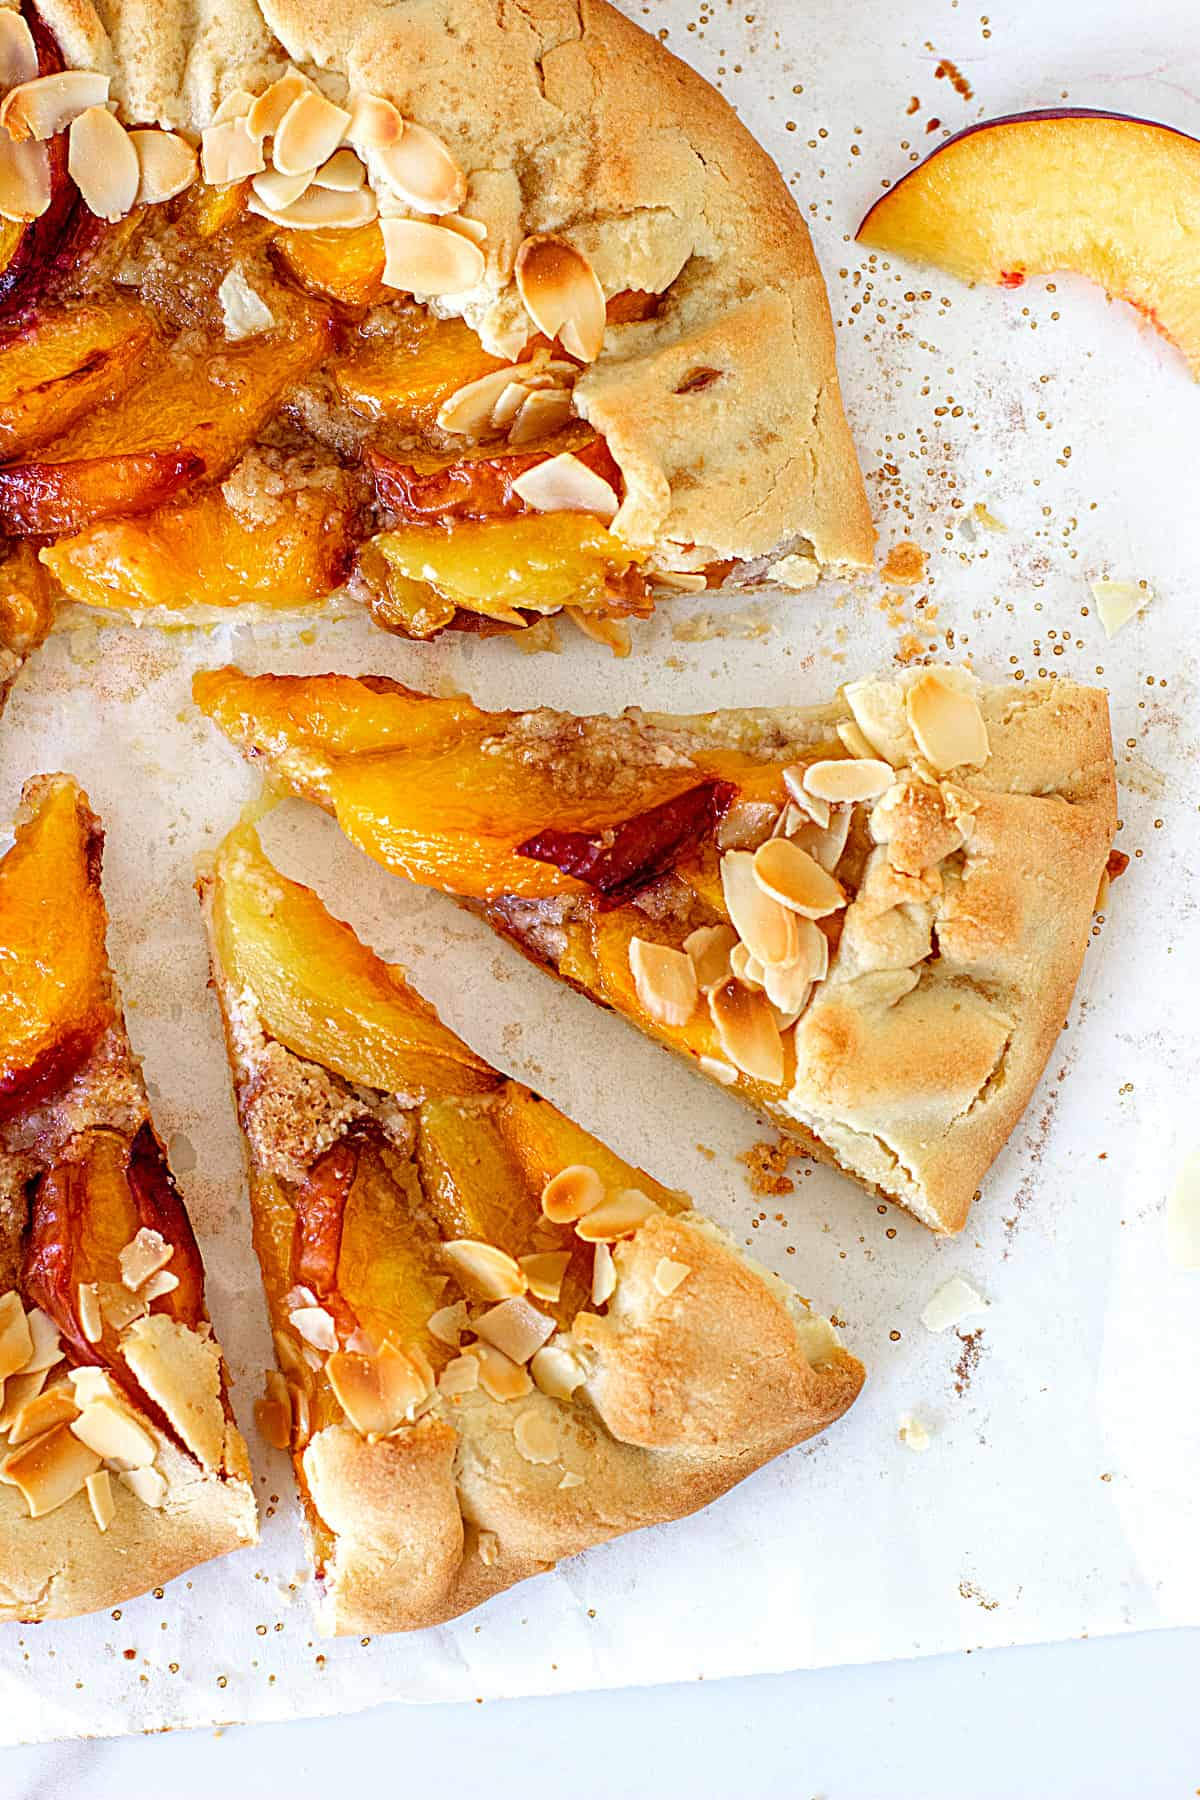 Two cut slices of a peach galette and rest of tart on a white surface, fresh peach slice